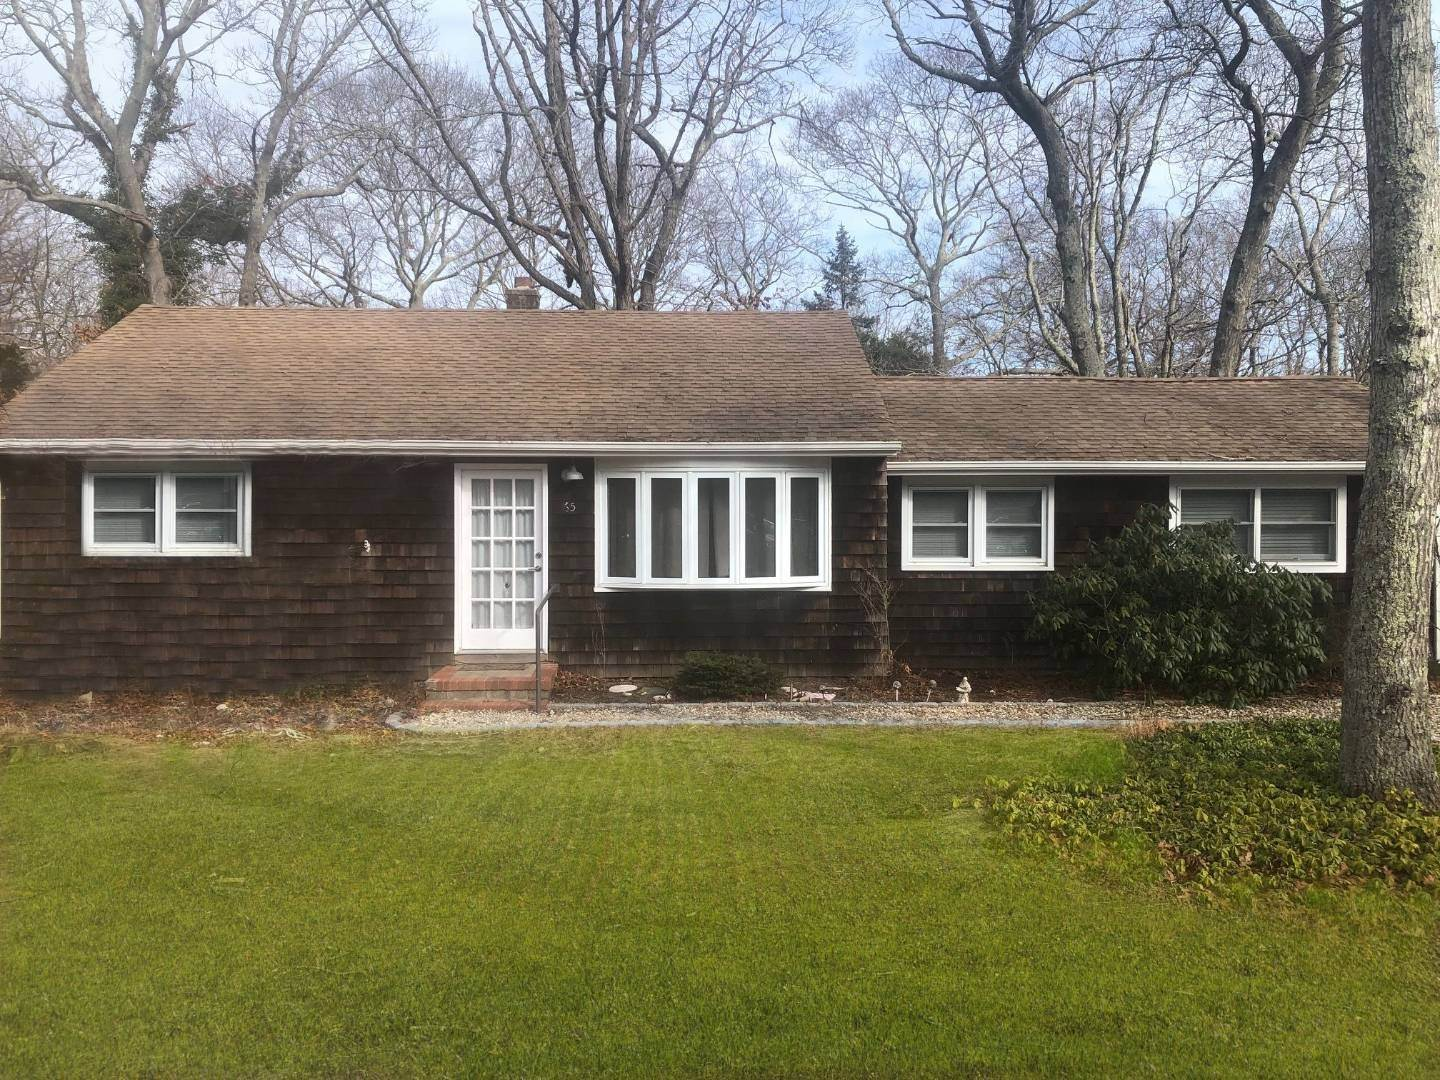 Single Family Home for Sale at Springs Cottage 65 Gardiner Ave, East Hampton, NY 11937